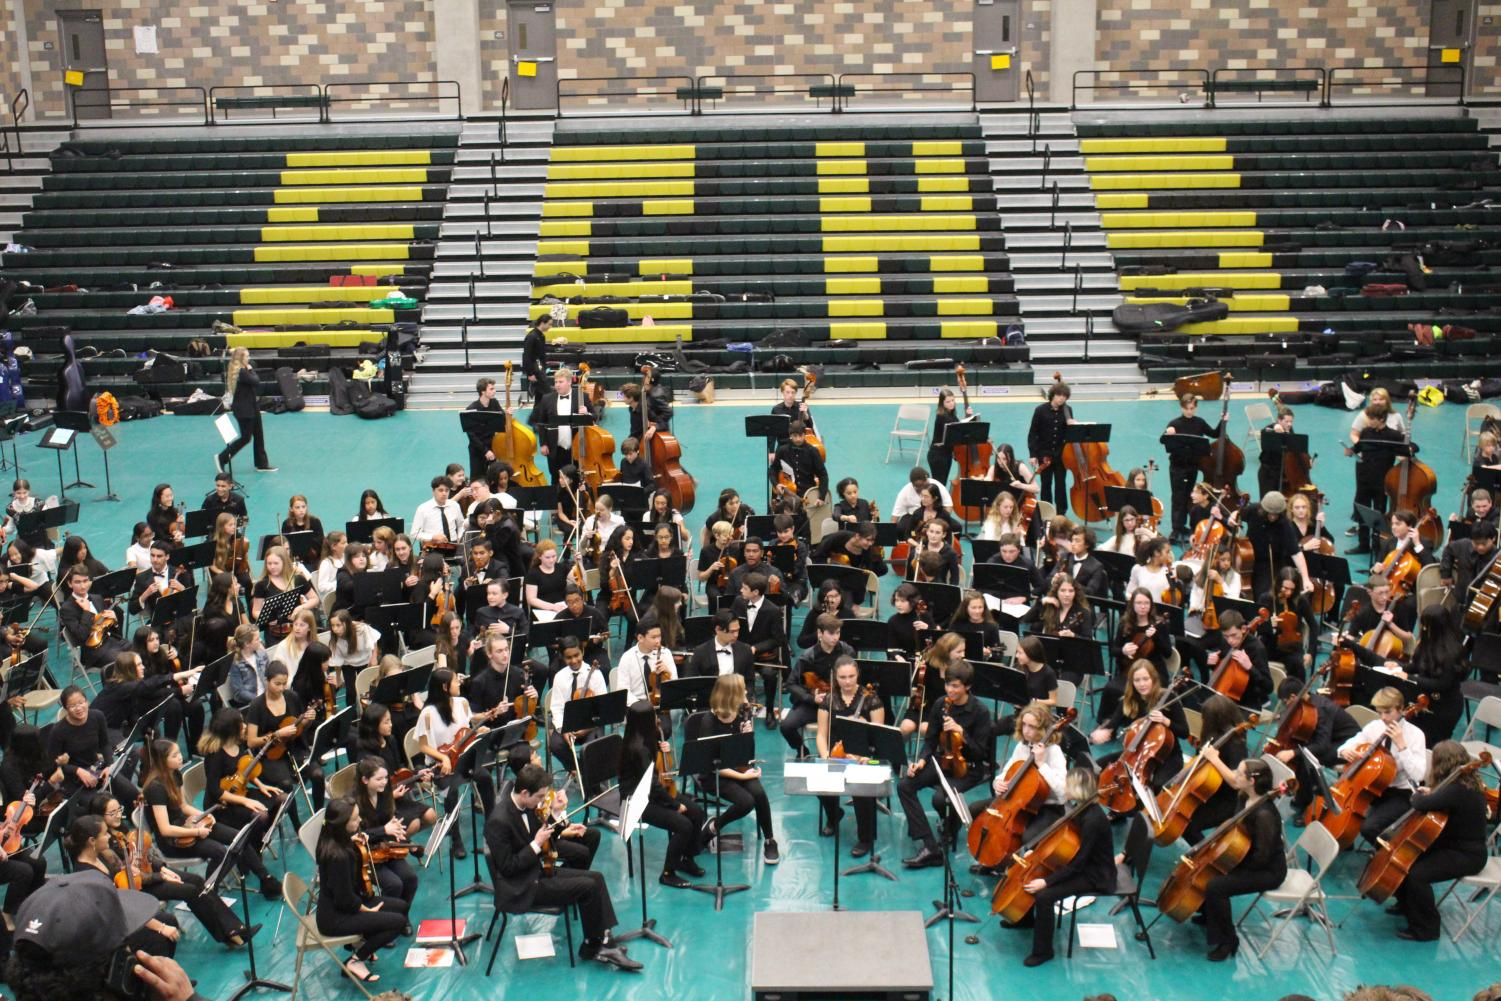 Students+prepare+to+perform+the+final+piece+for+the+CUSD+combined+orchestra+concert.+On+January+27%2C+CUSD+Middle+schools%2C+Hope+elementary+and+Sage+Creek+High+School+performed+all+together.